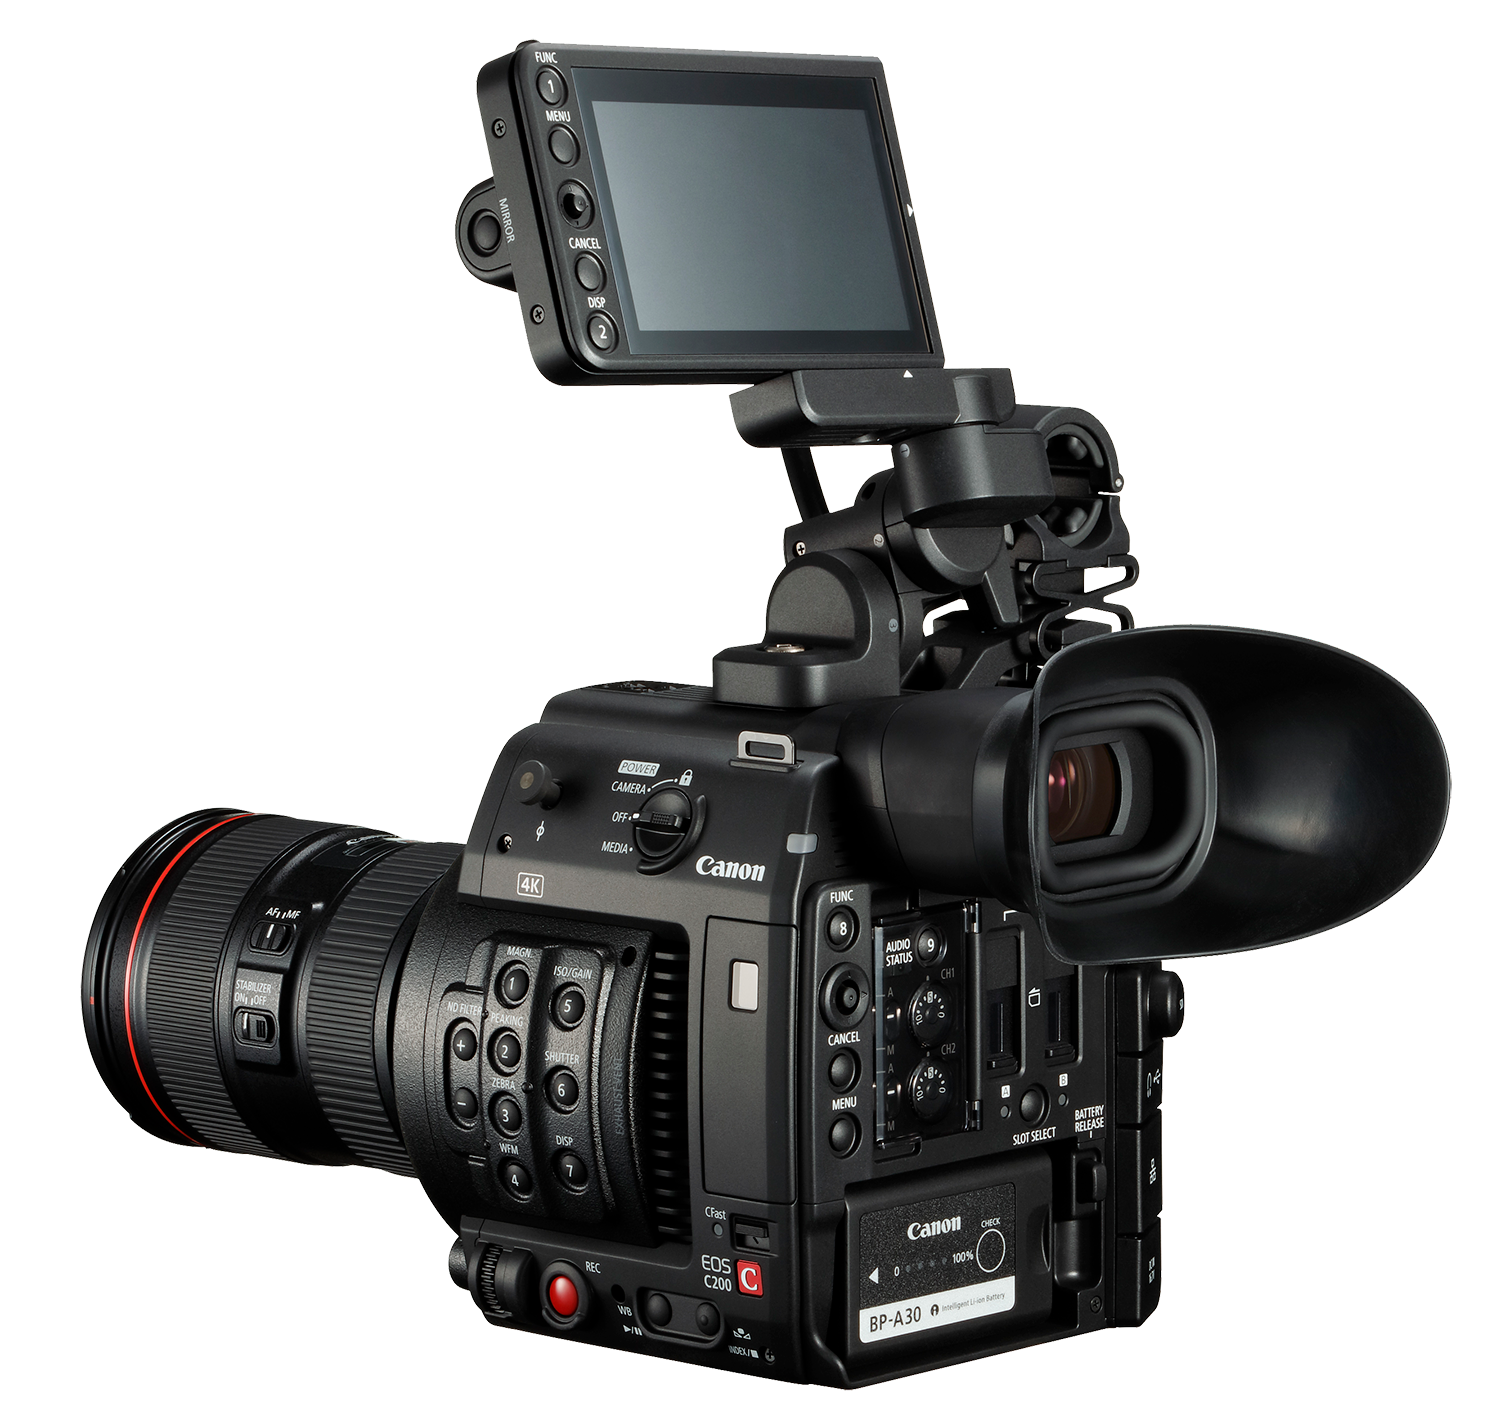 canon eos c200 for hire